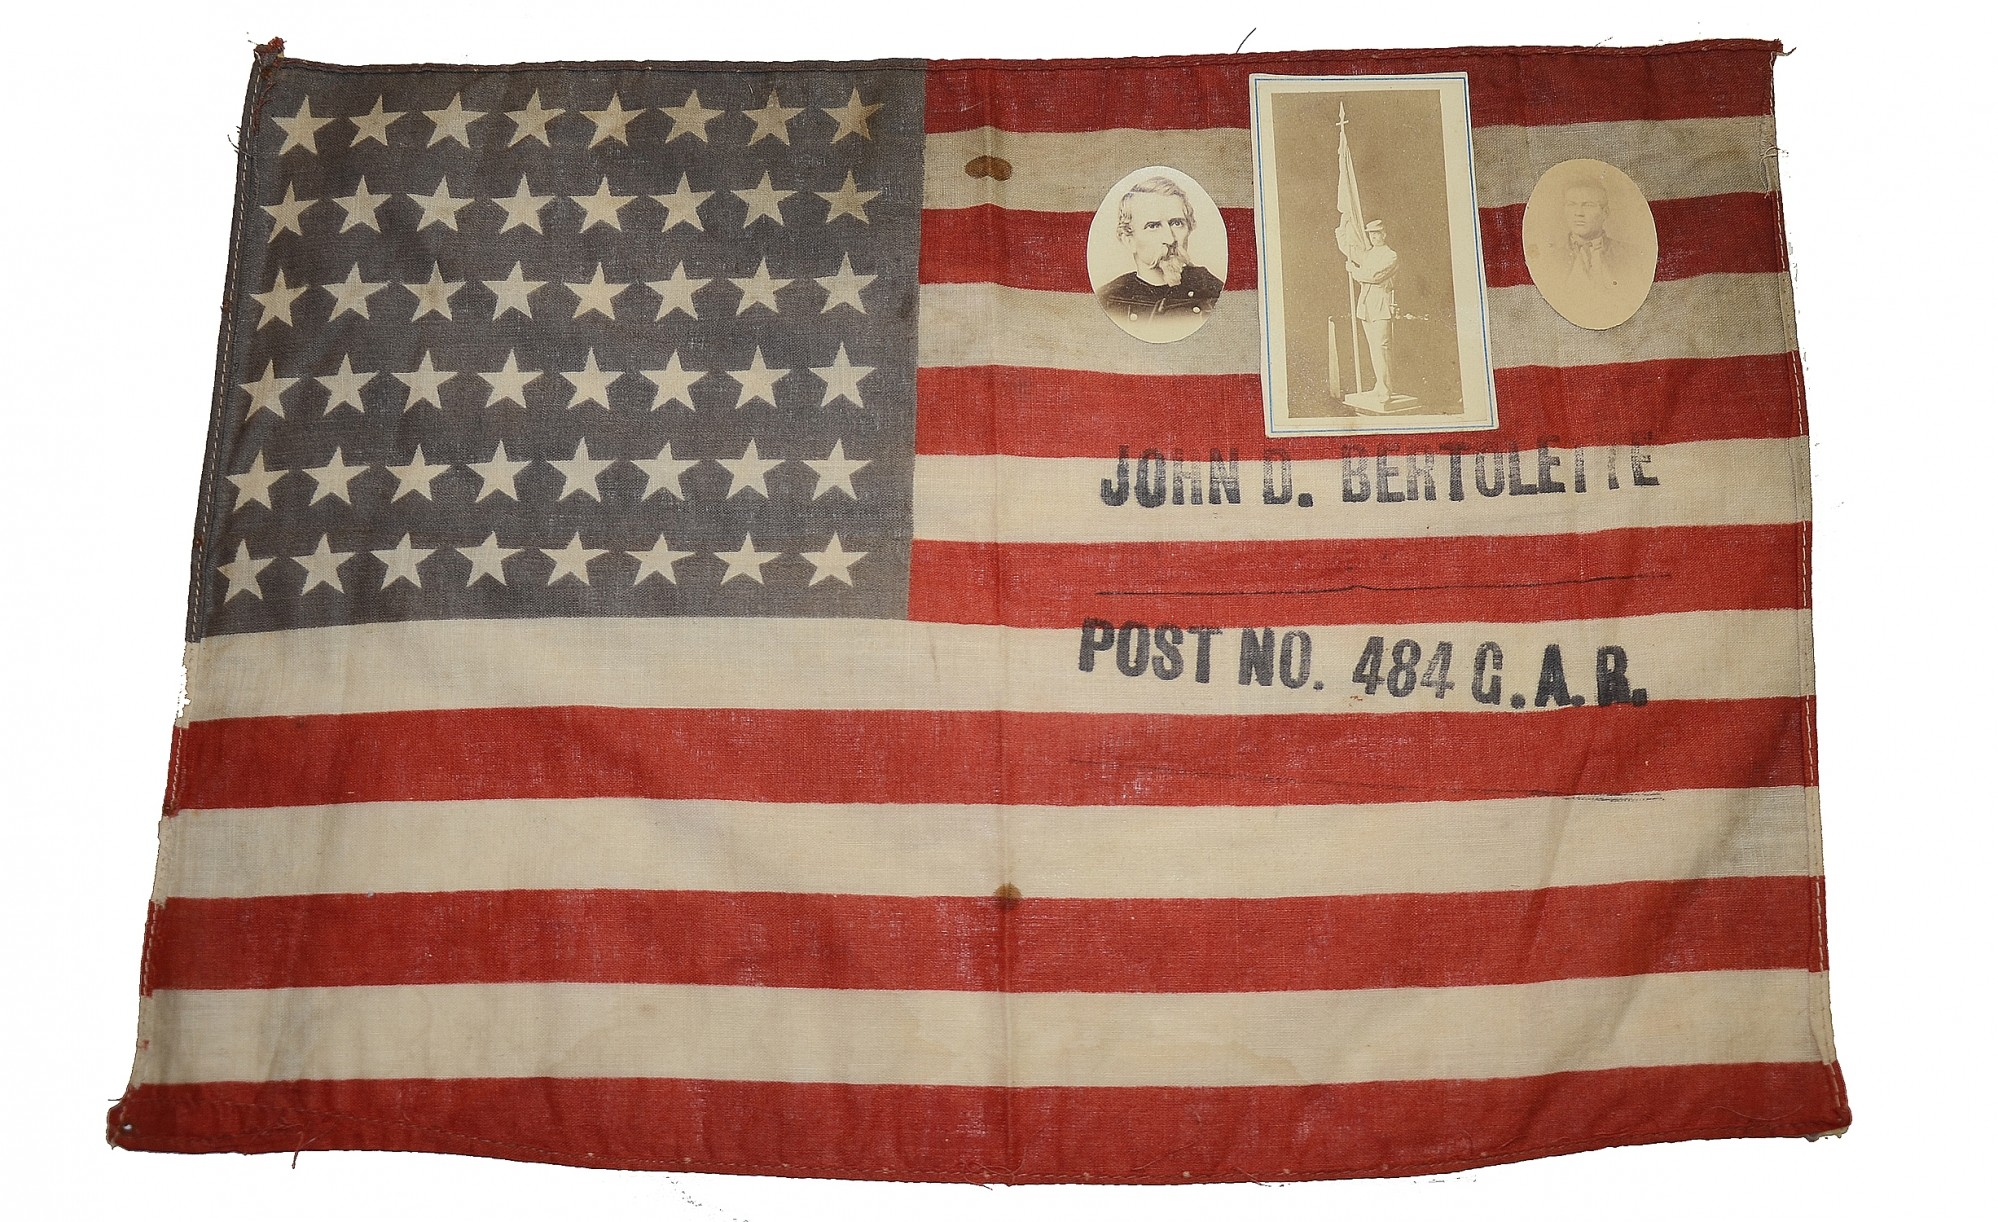 48 STAR GAR FLAG FOR PENNSYLVANIA POST #484